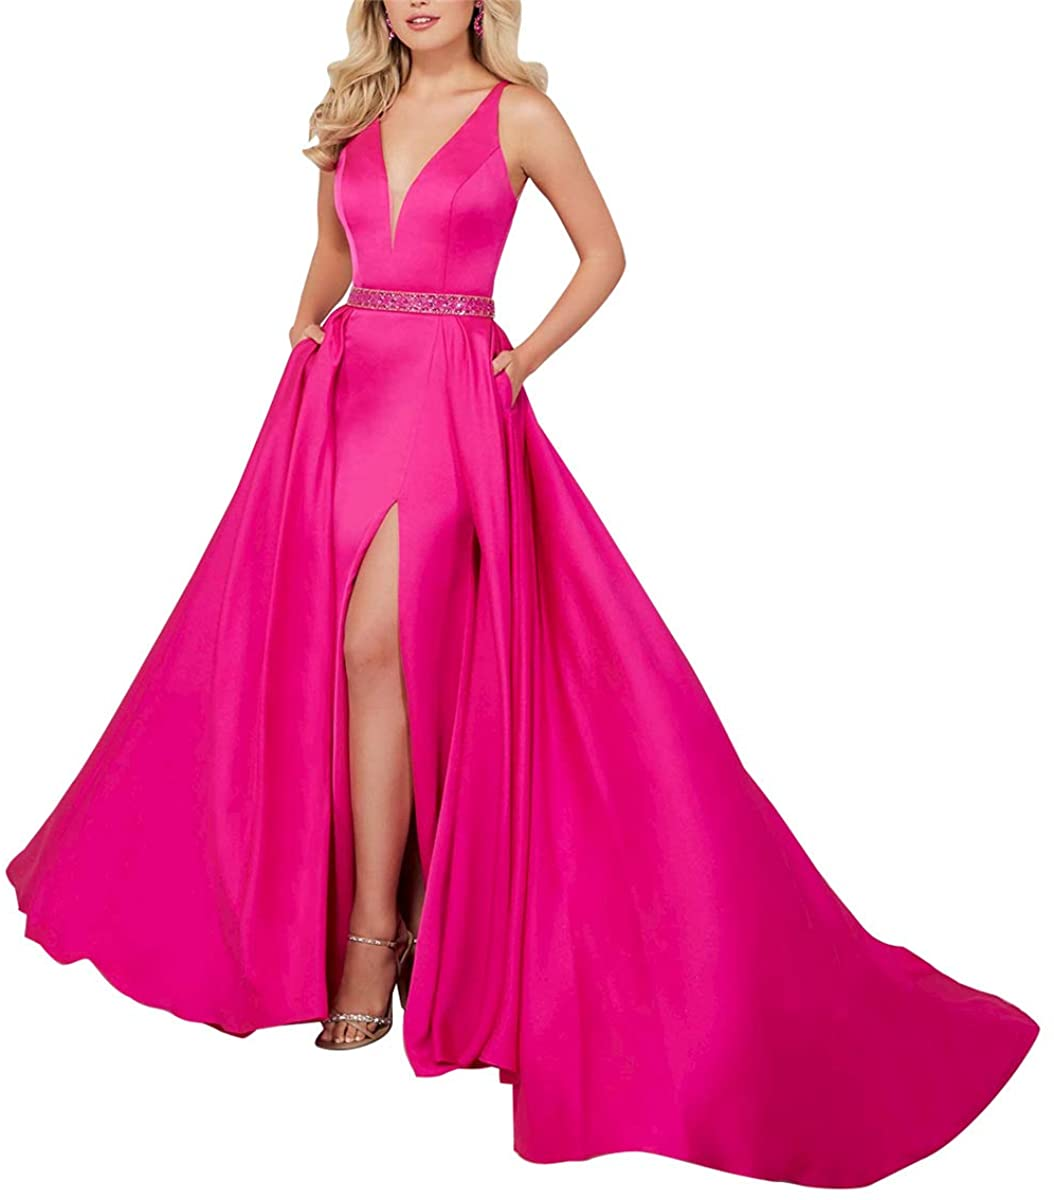 Rjer V Neck Satin Prom Dresses Beaded Long A Line Slit Formal Ball Gowns with Pockets